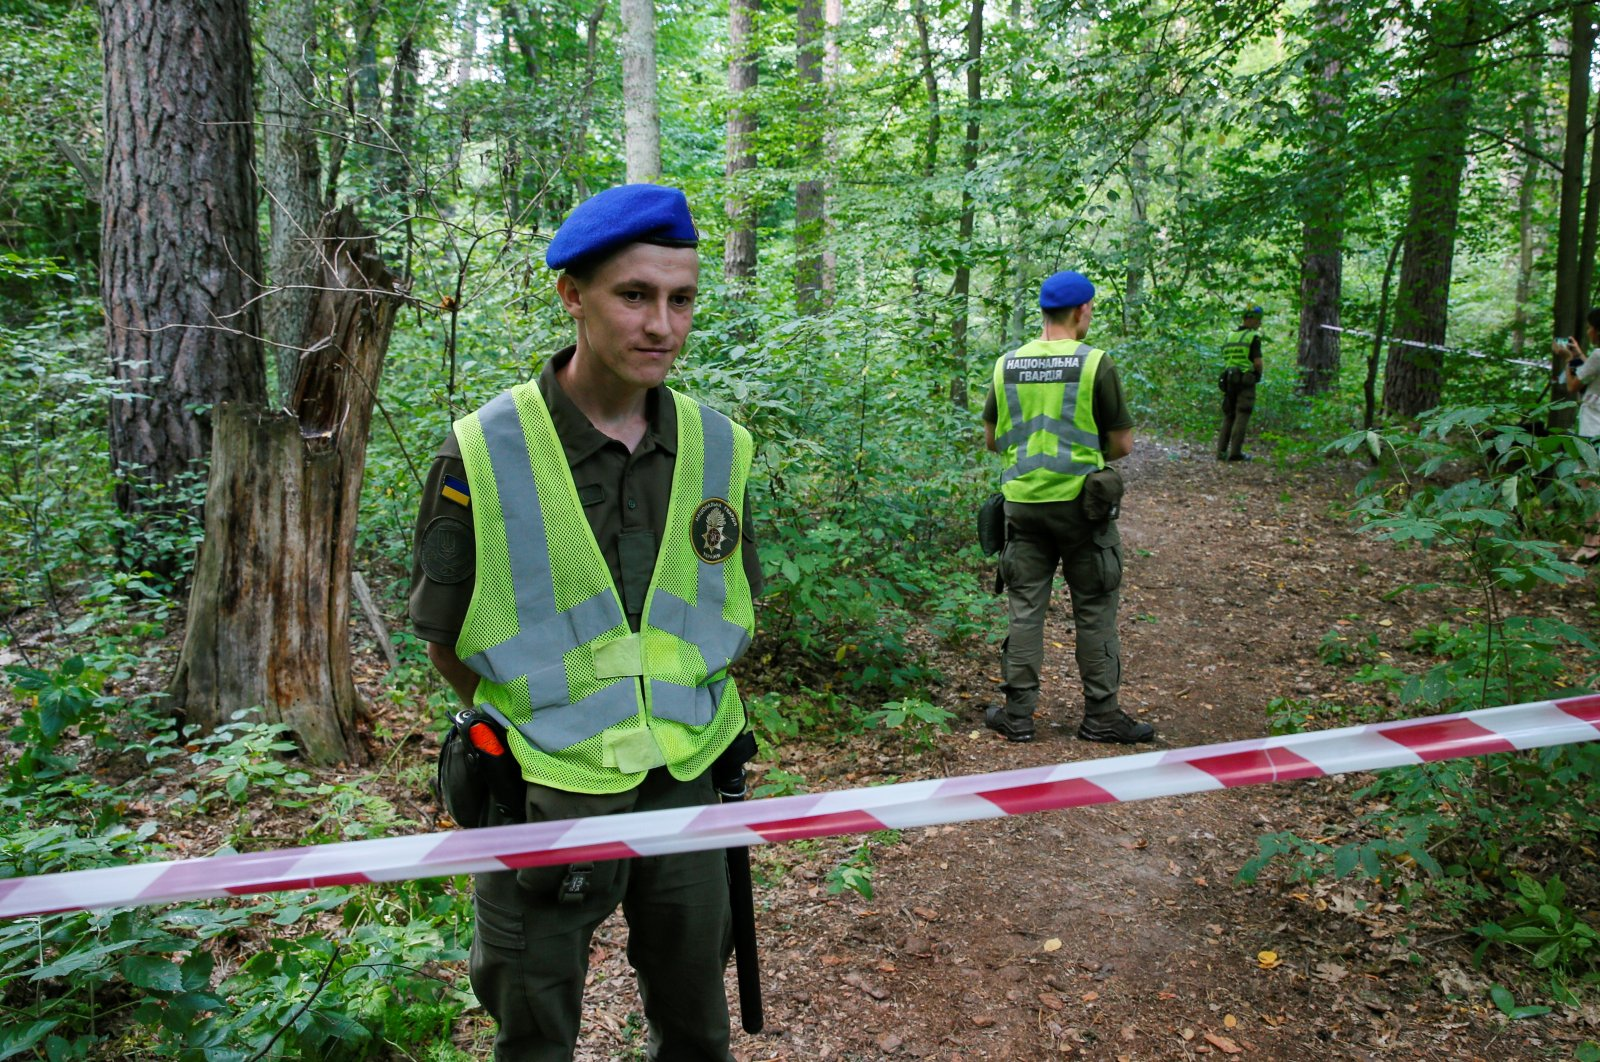 A view of the site where Vitaly Shishov, who led a Kyiv-based organisation that helps Belarusians fleeing persecution, was found dead in Kyiv, Ukraine, August 3, 2021. (Reuters Photo)